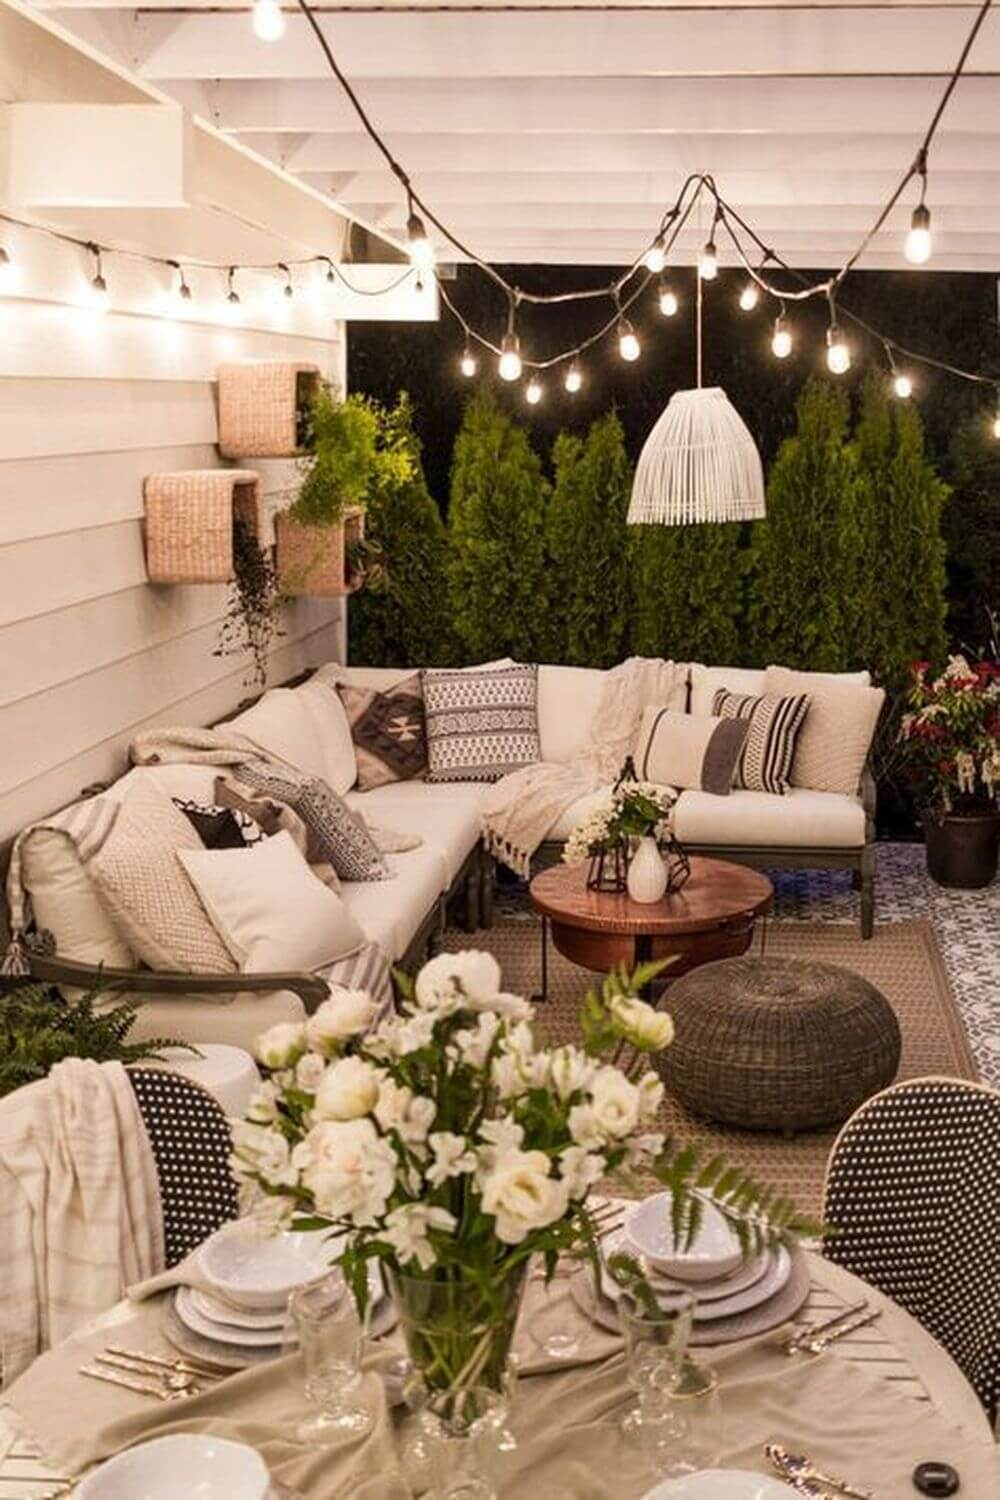 33 Best Outdoor Living Space Ideas and Designs for 2020 on Garden Living Space id=72435